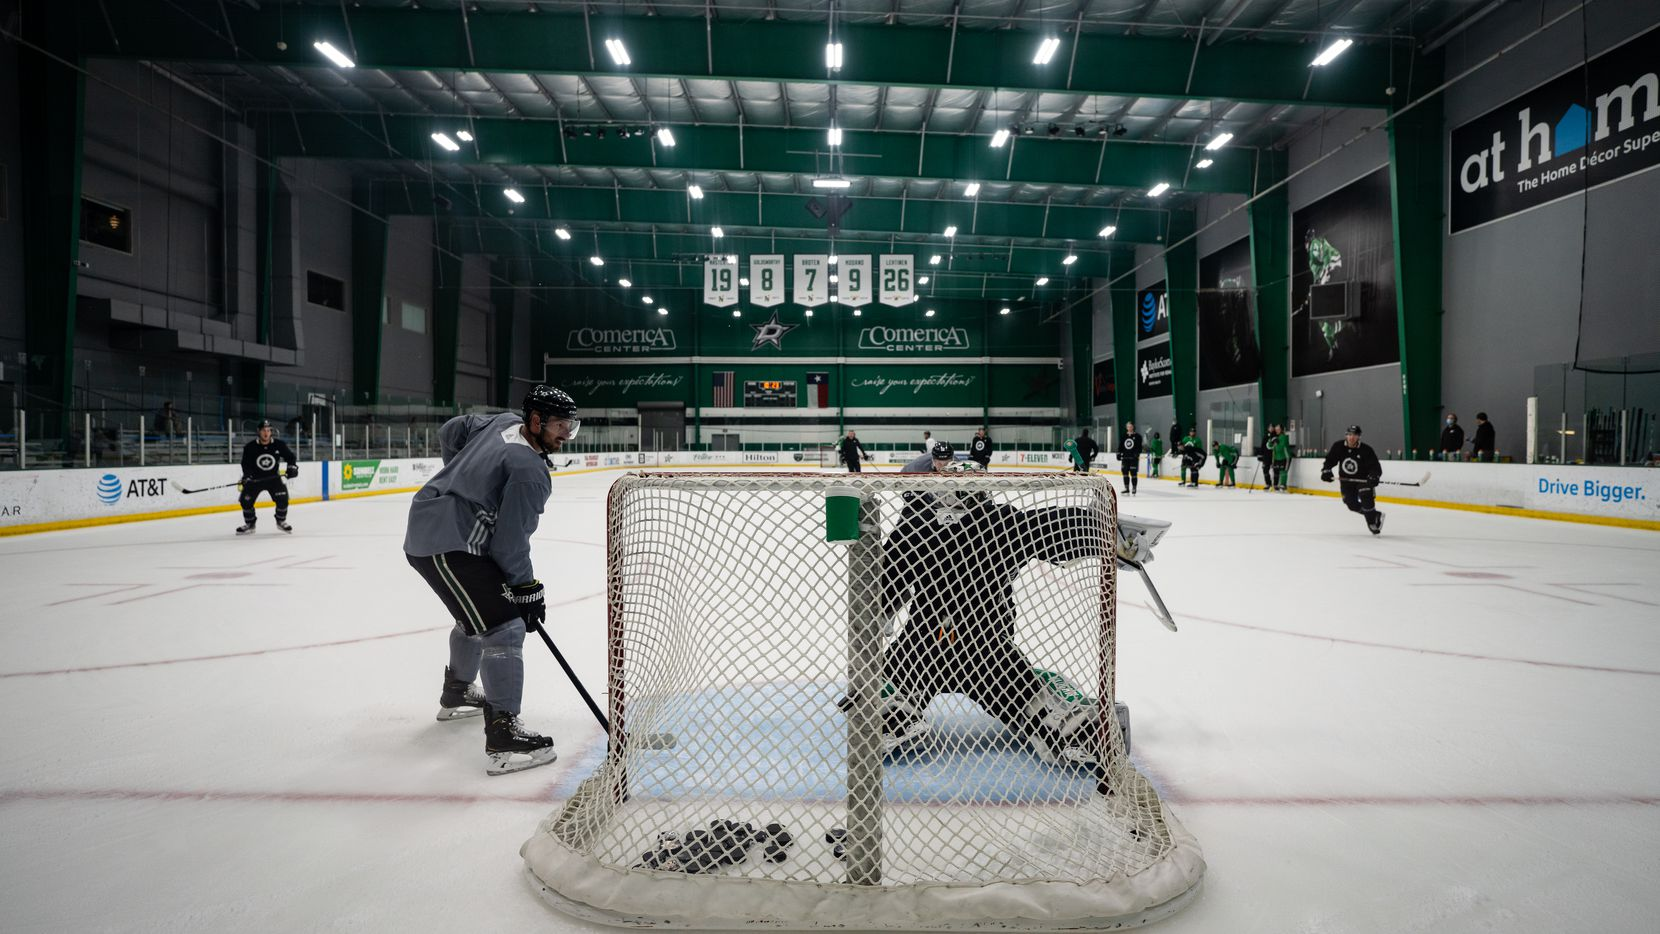 The Dallas Stars opened postseason training camp at the Comerica Center, Monday July 13, 2020 in Frisco, Texas. The Dallas team was together in the same building for the first time Monday since the NHL went on hiatus due to the coronavirus pandemic.